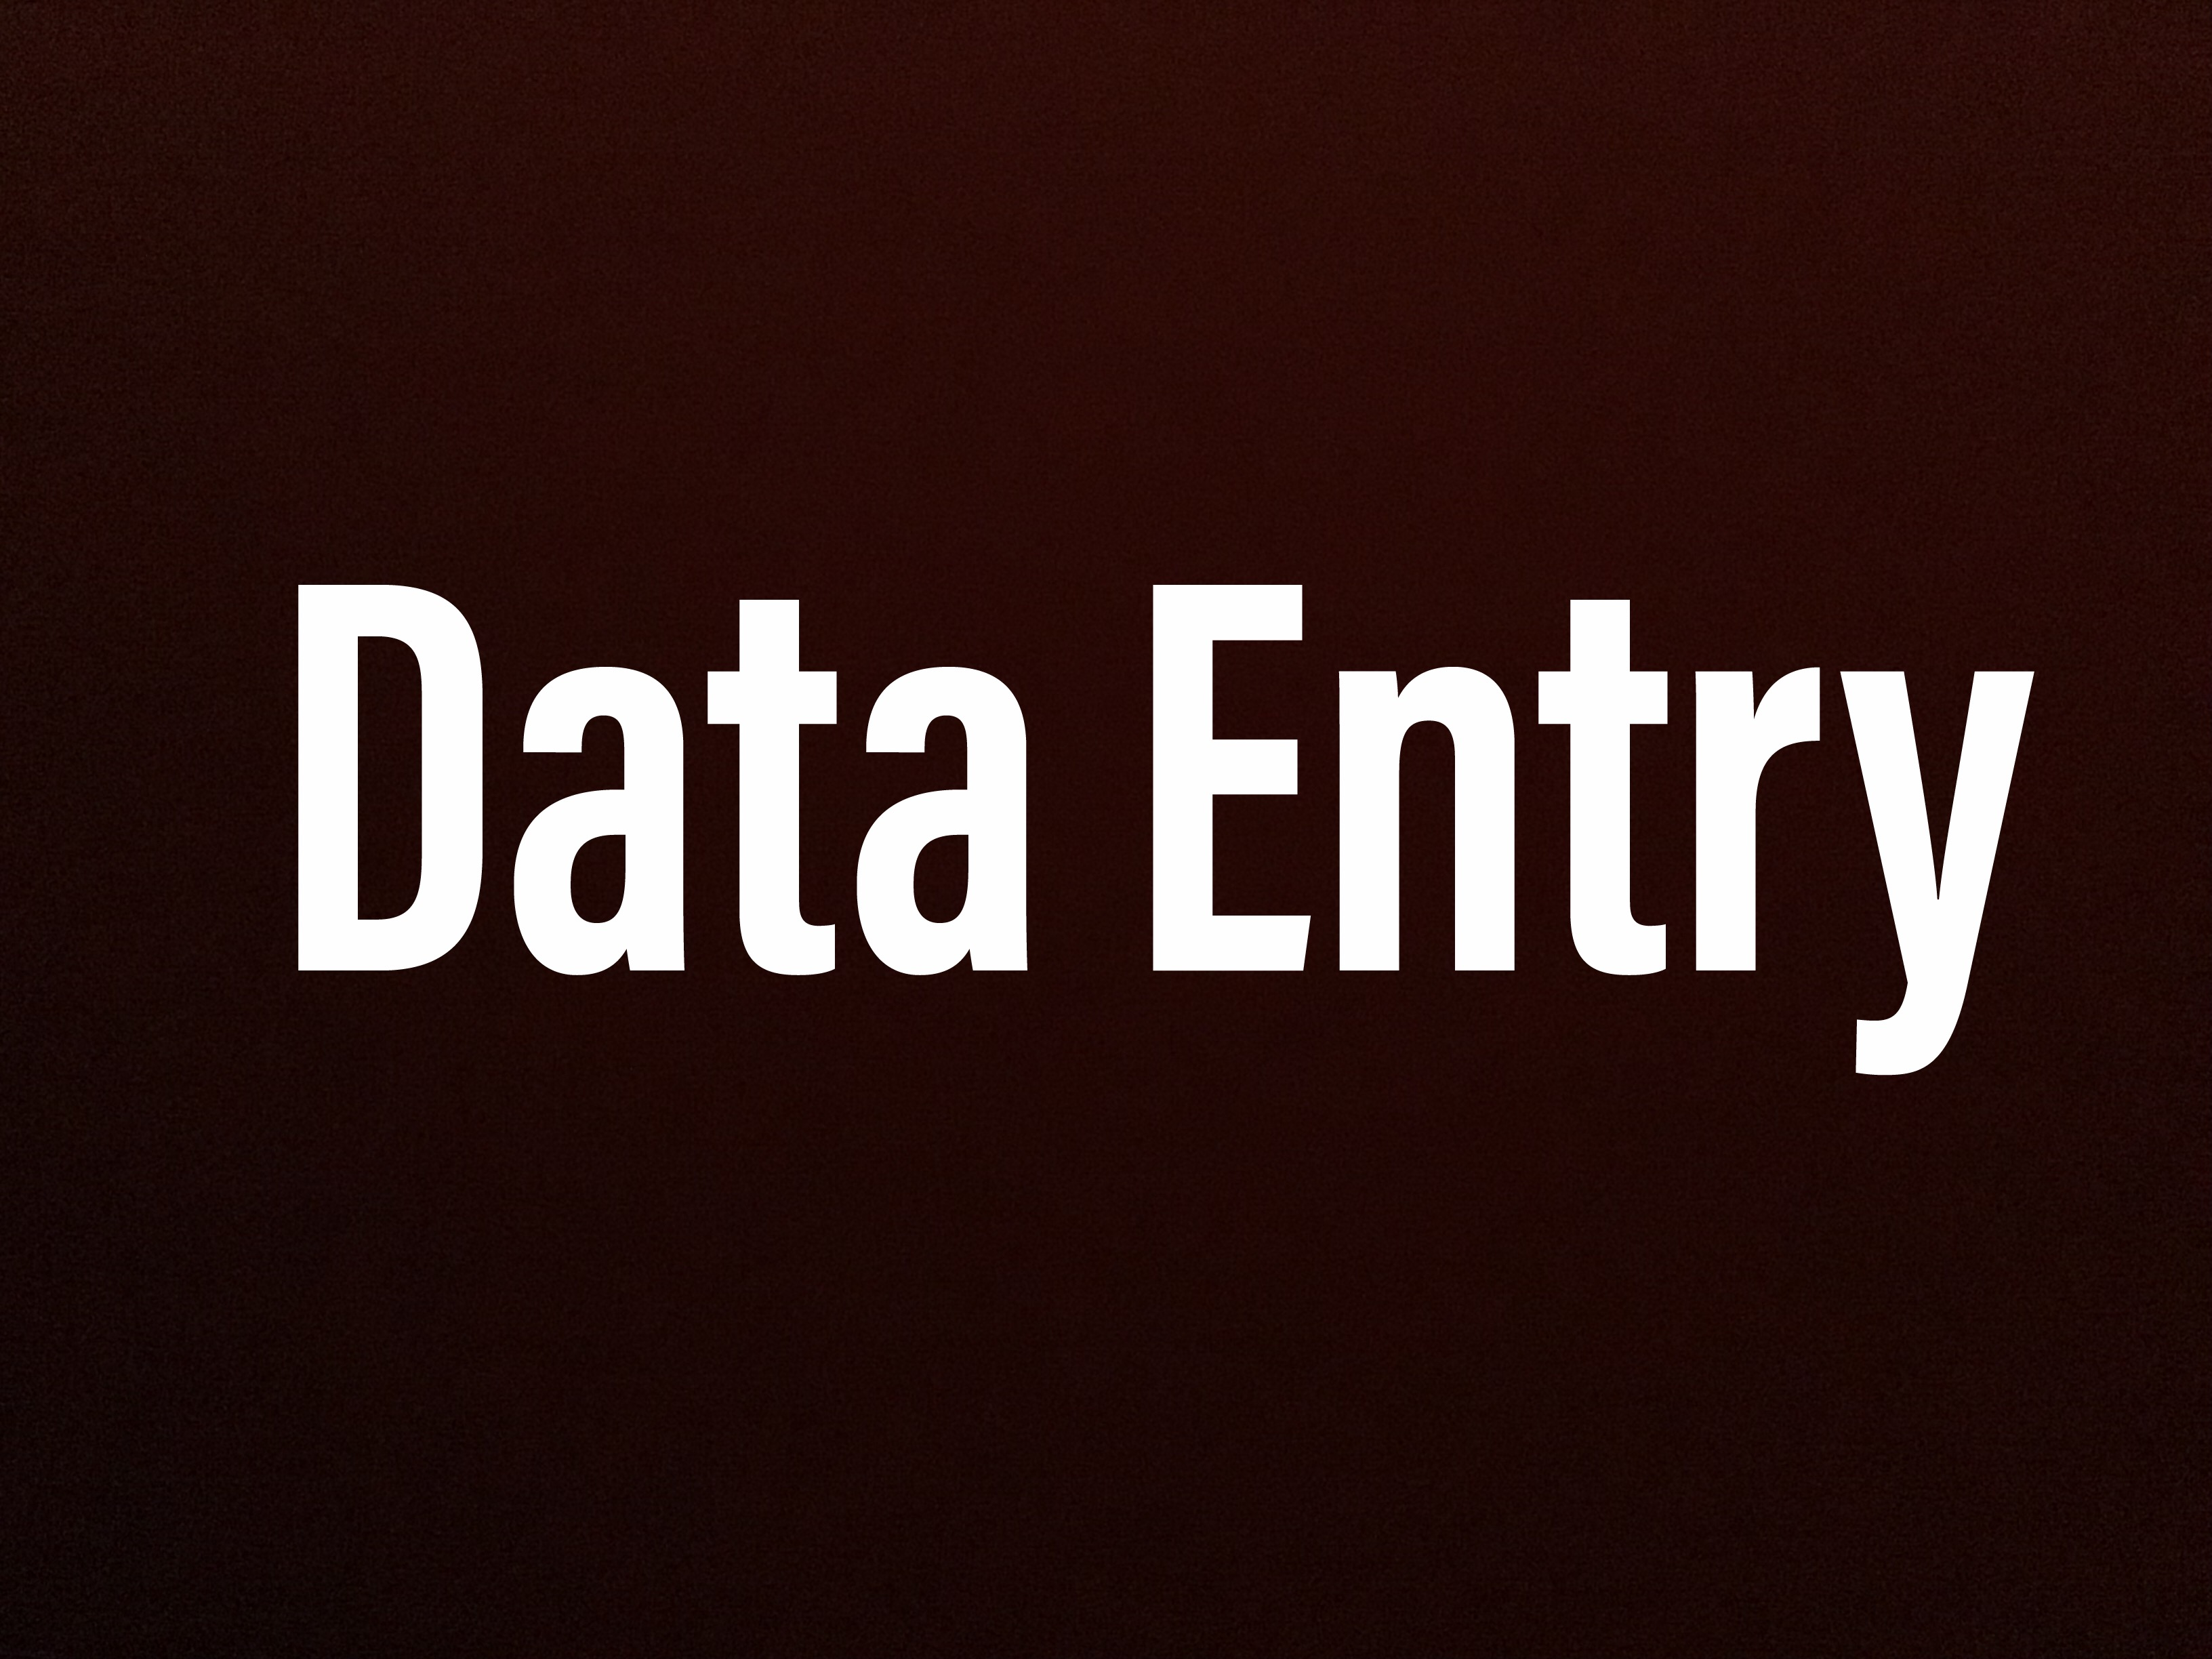 Data entry. Expected delivery of 1 day